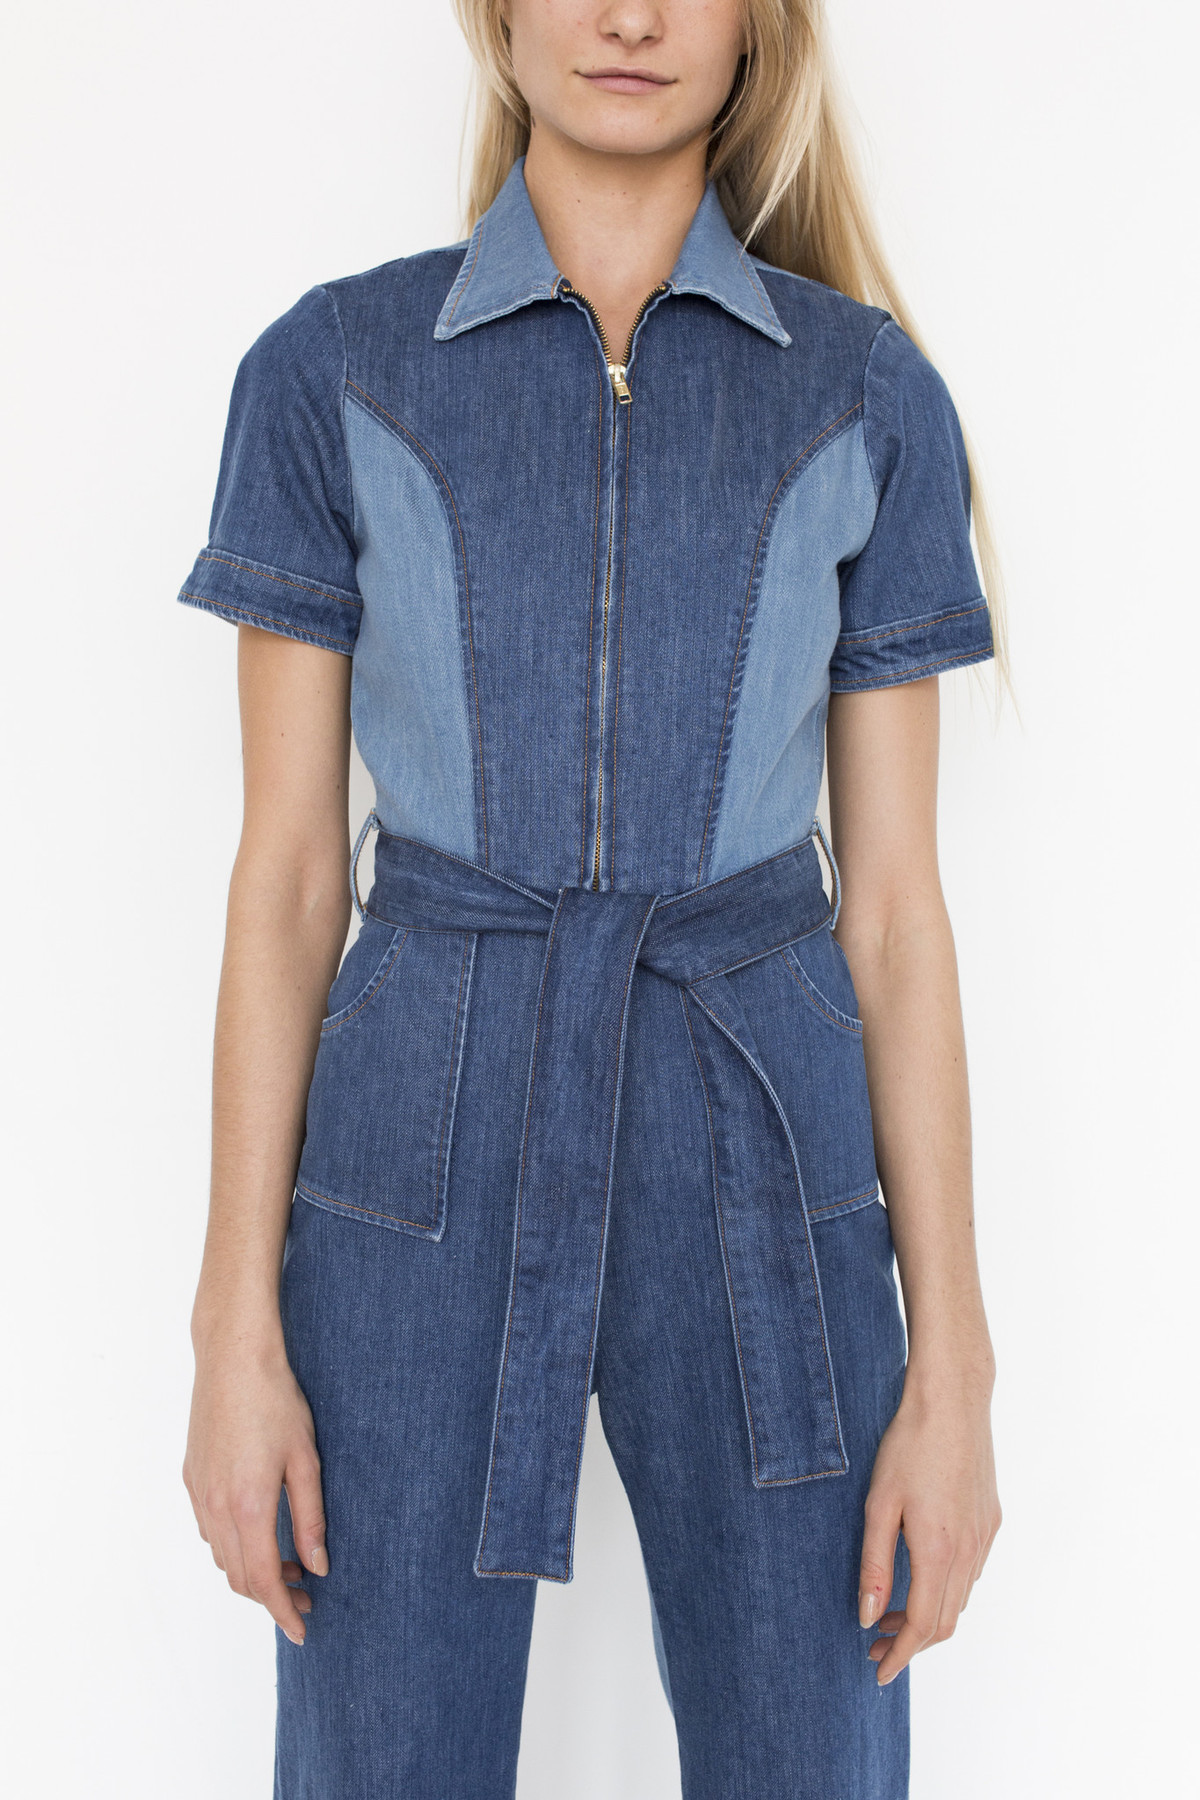 c8d48b51bd60 Stoned Immaculate Denim Blue Jean Baby Jumpsuit